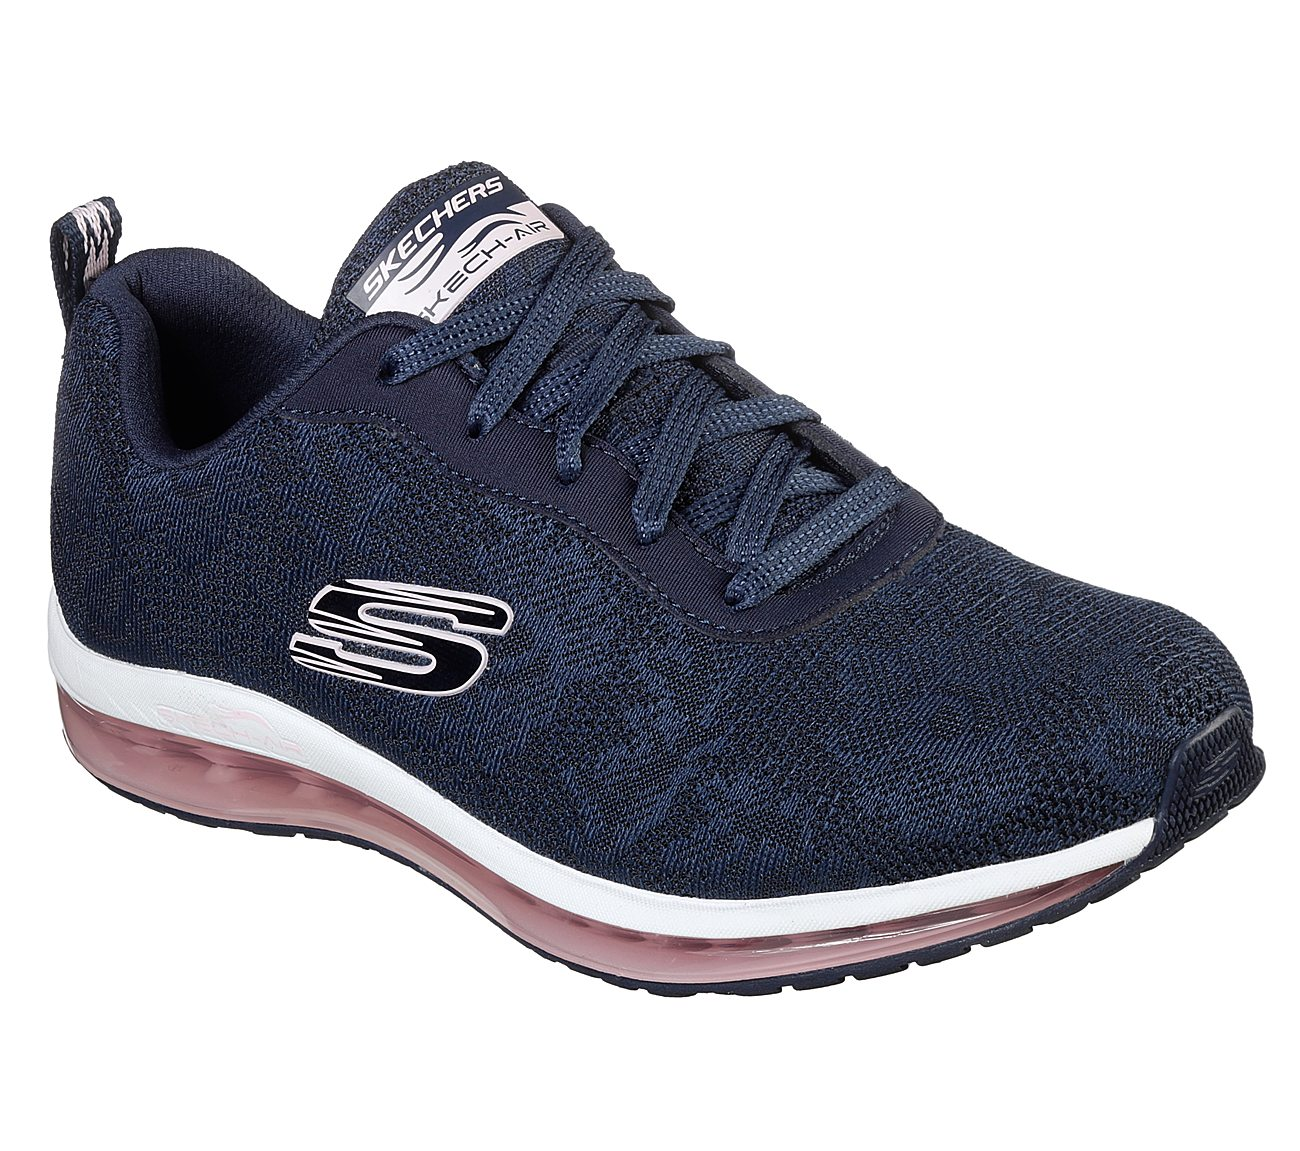 skechers skech air